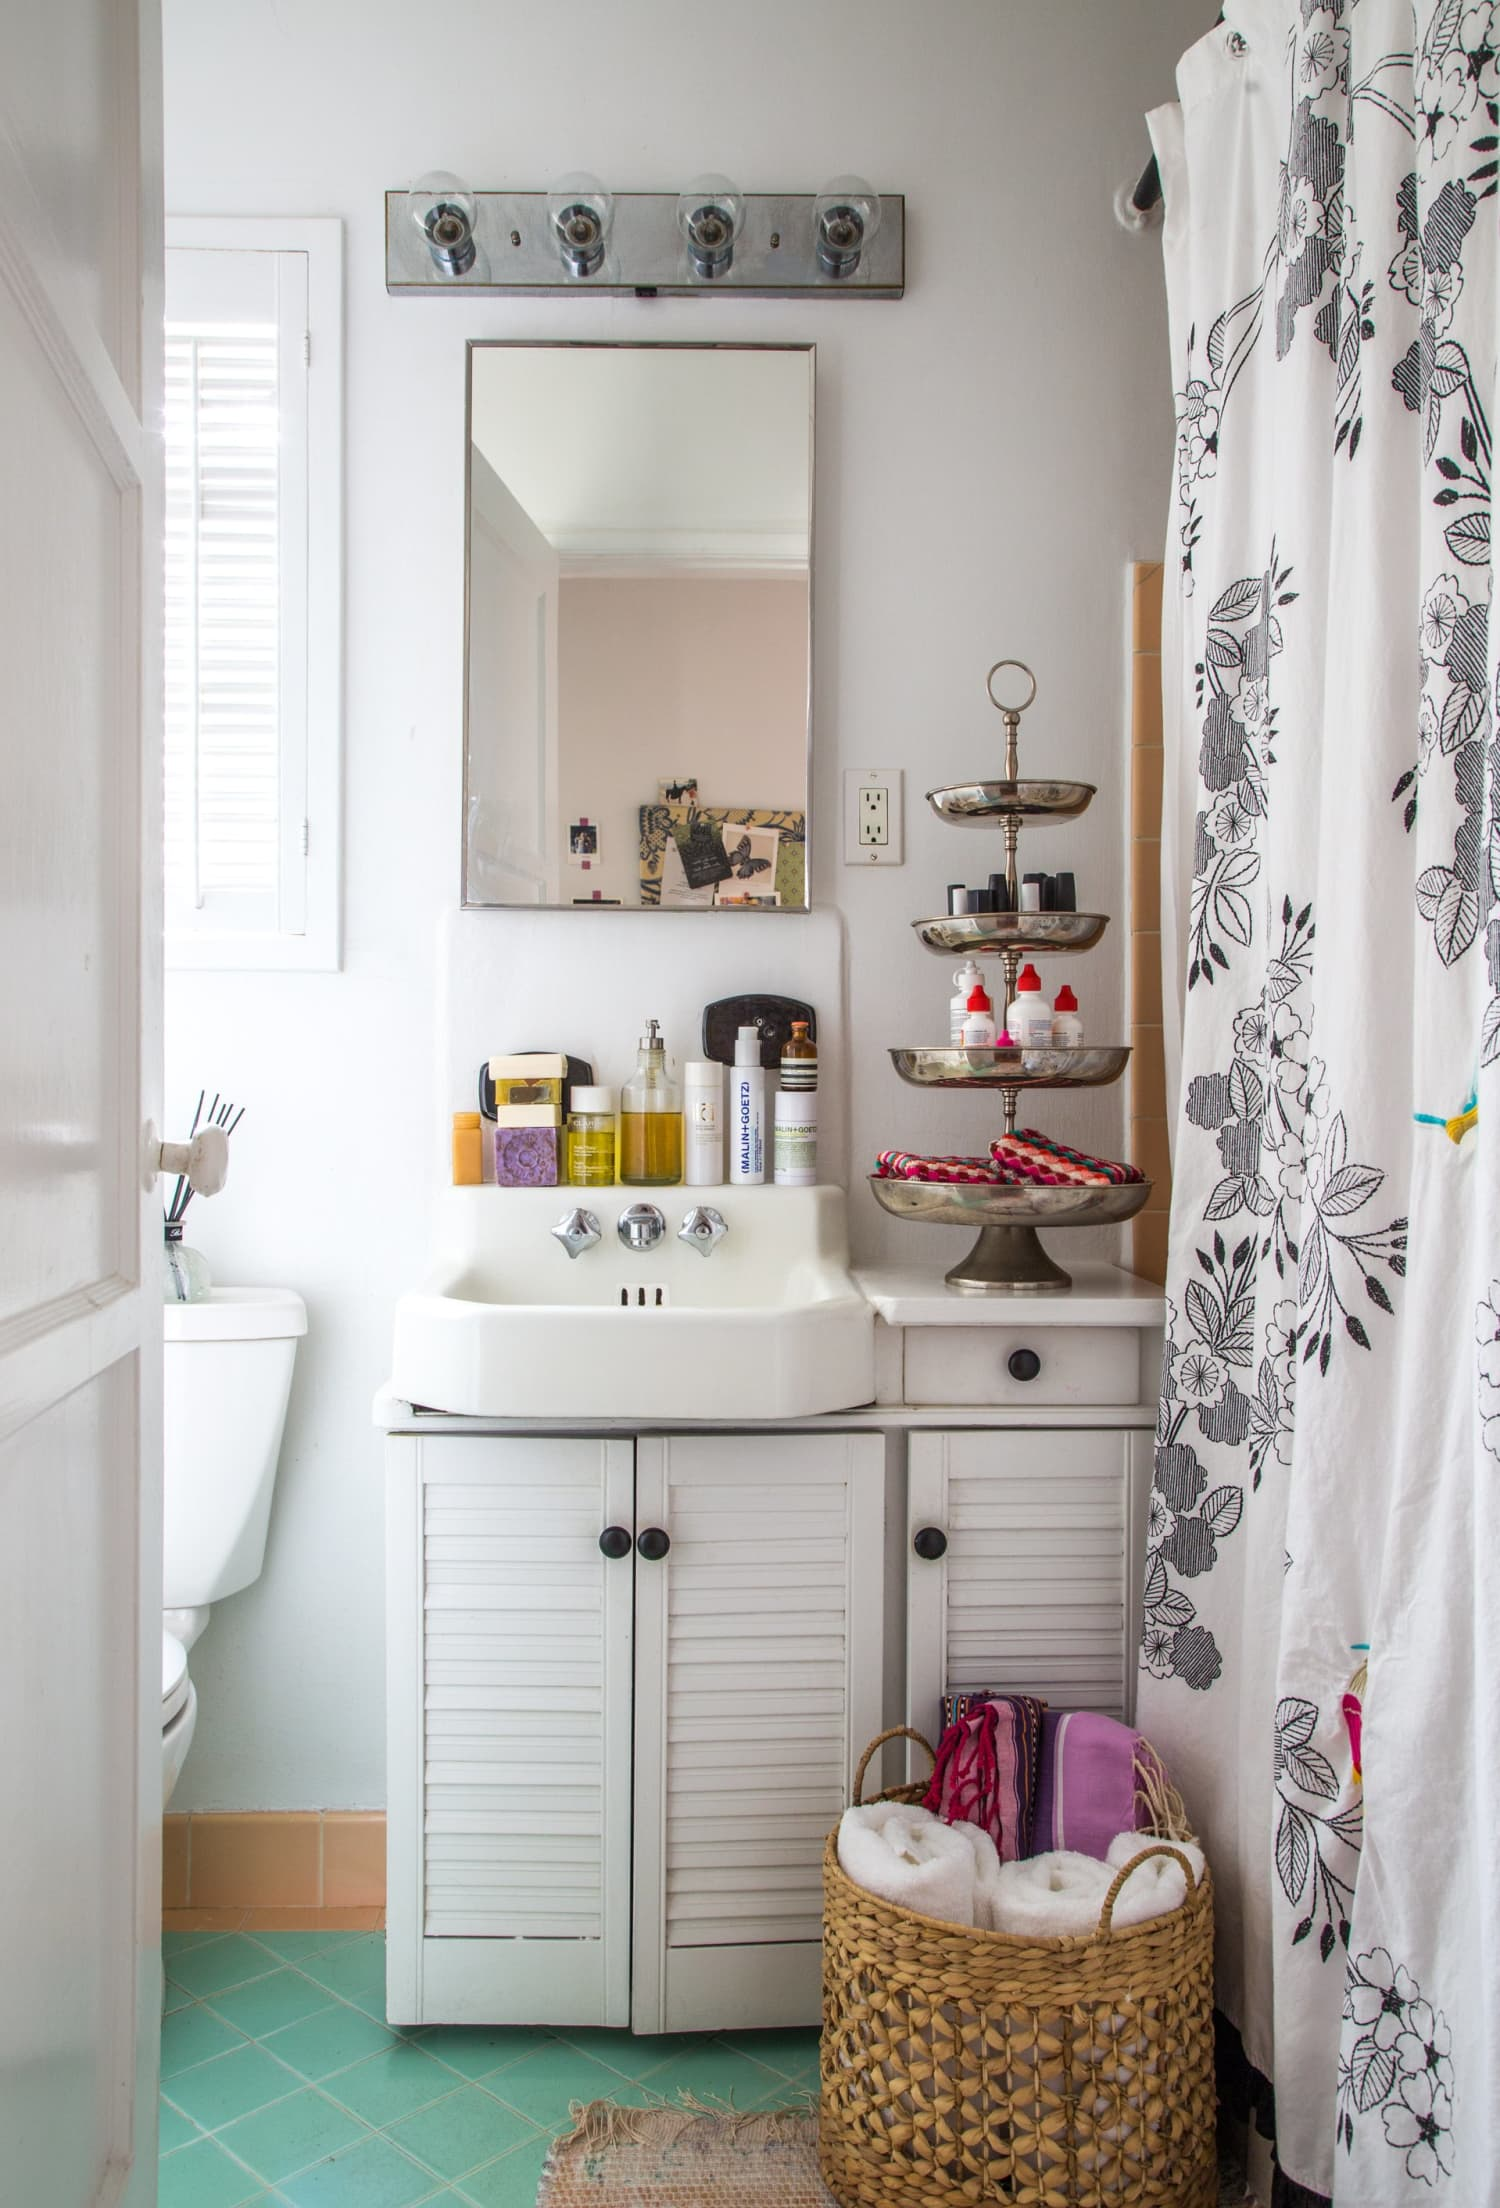 7 Clever Ways to Add Storage to a Small Bathroom ... on Small Apartment Bathroom  id=38457